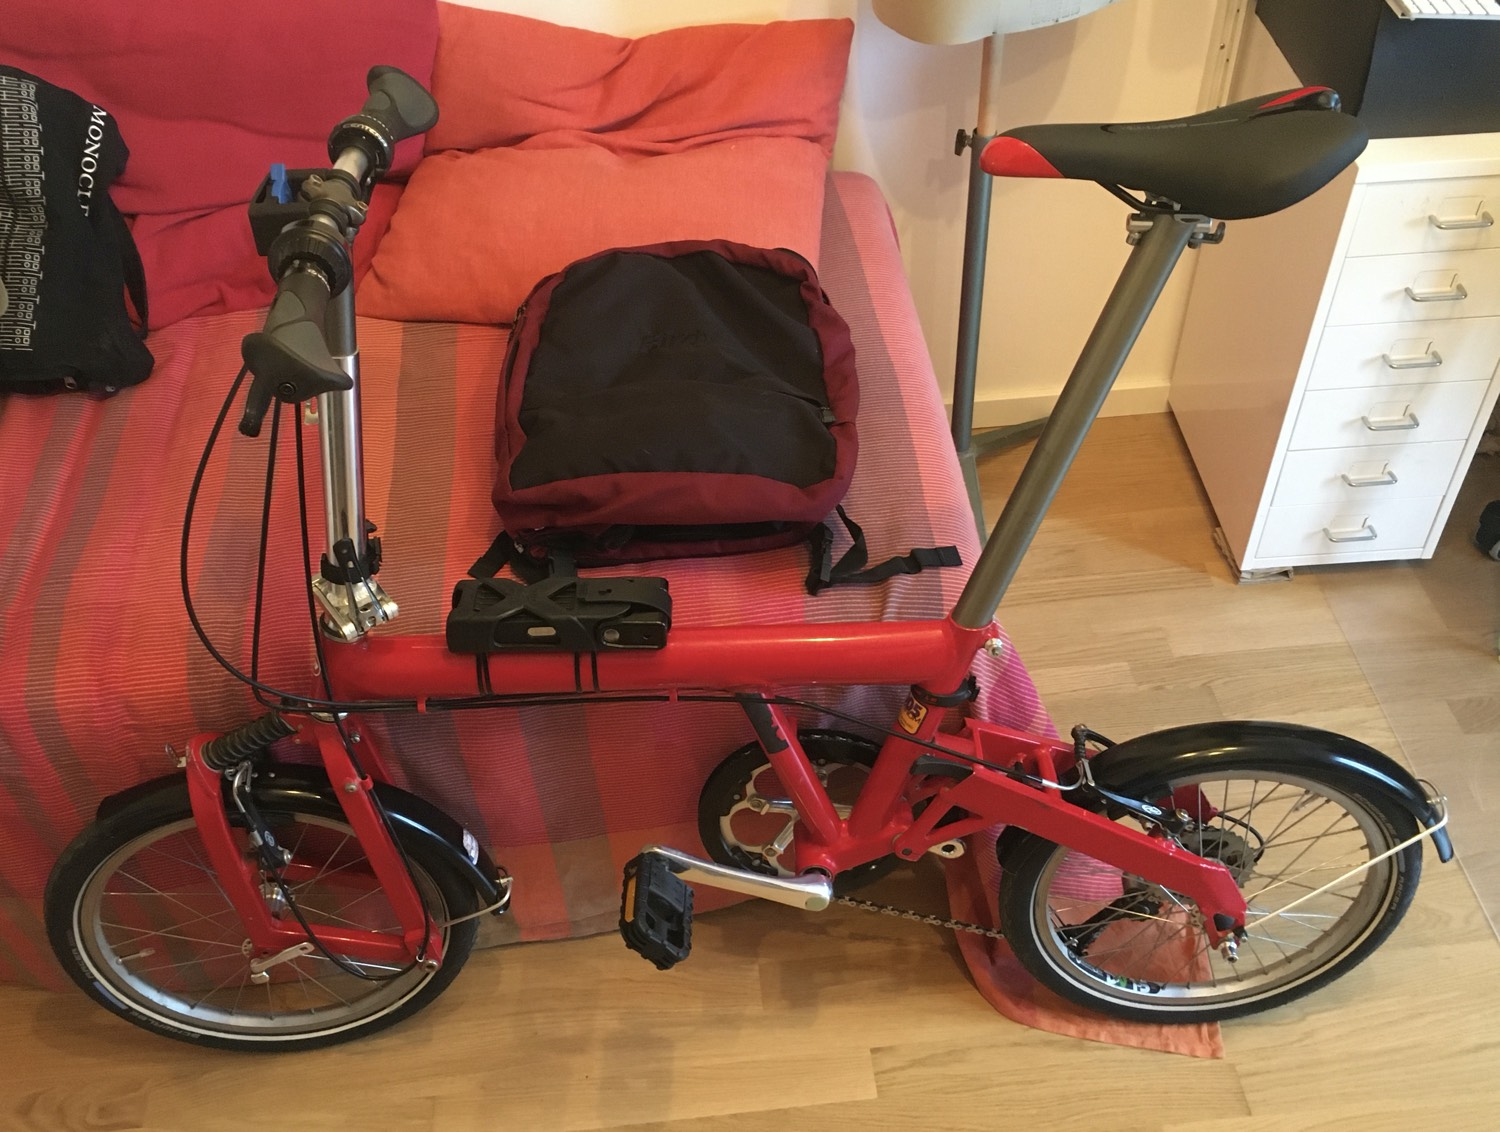 Turning A 2001 Riese Und Muller Birdy Into A Modern Folding Bicycle Jon Worth Euroblog